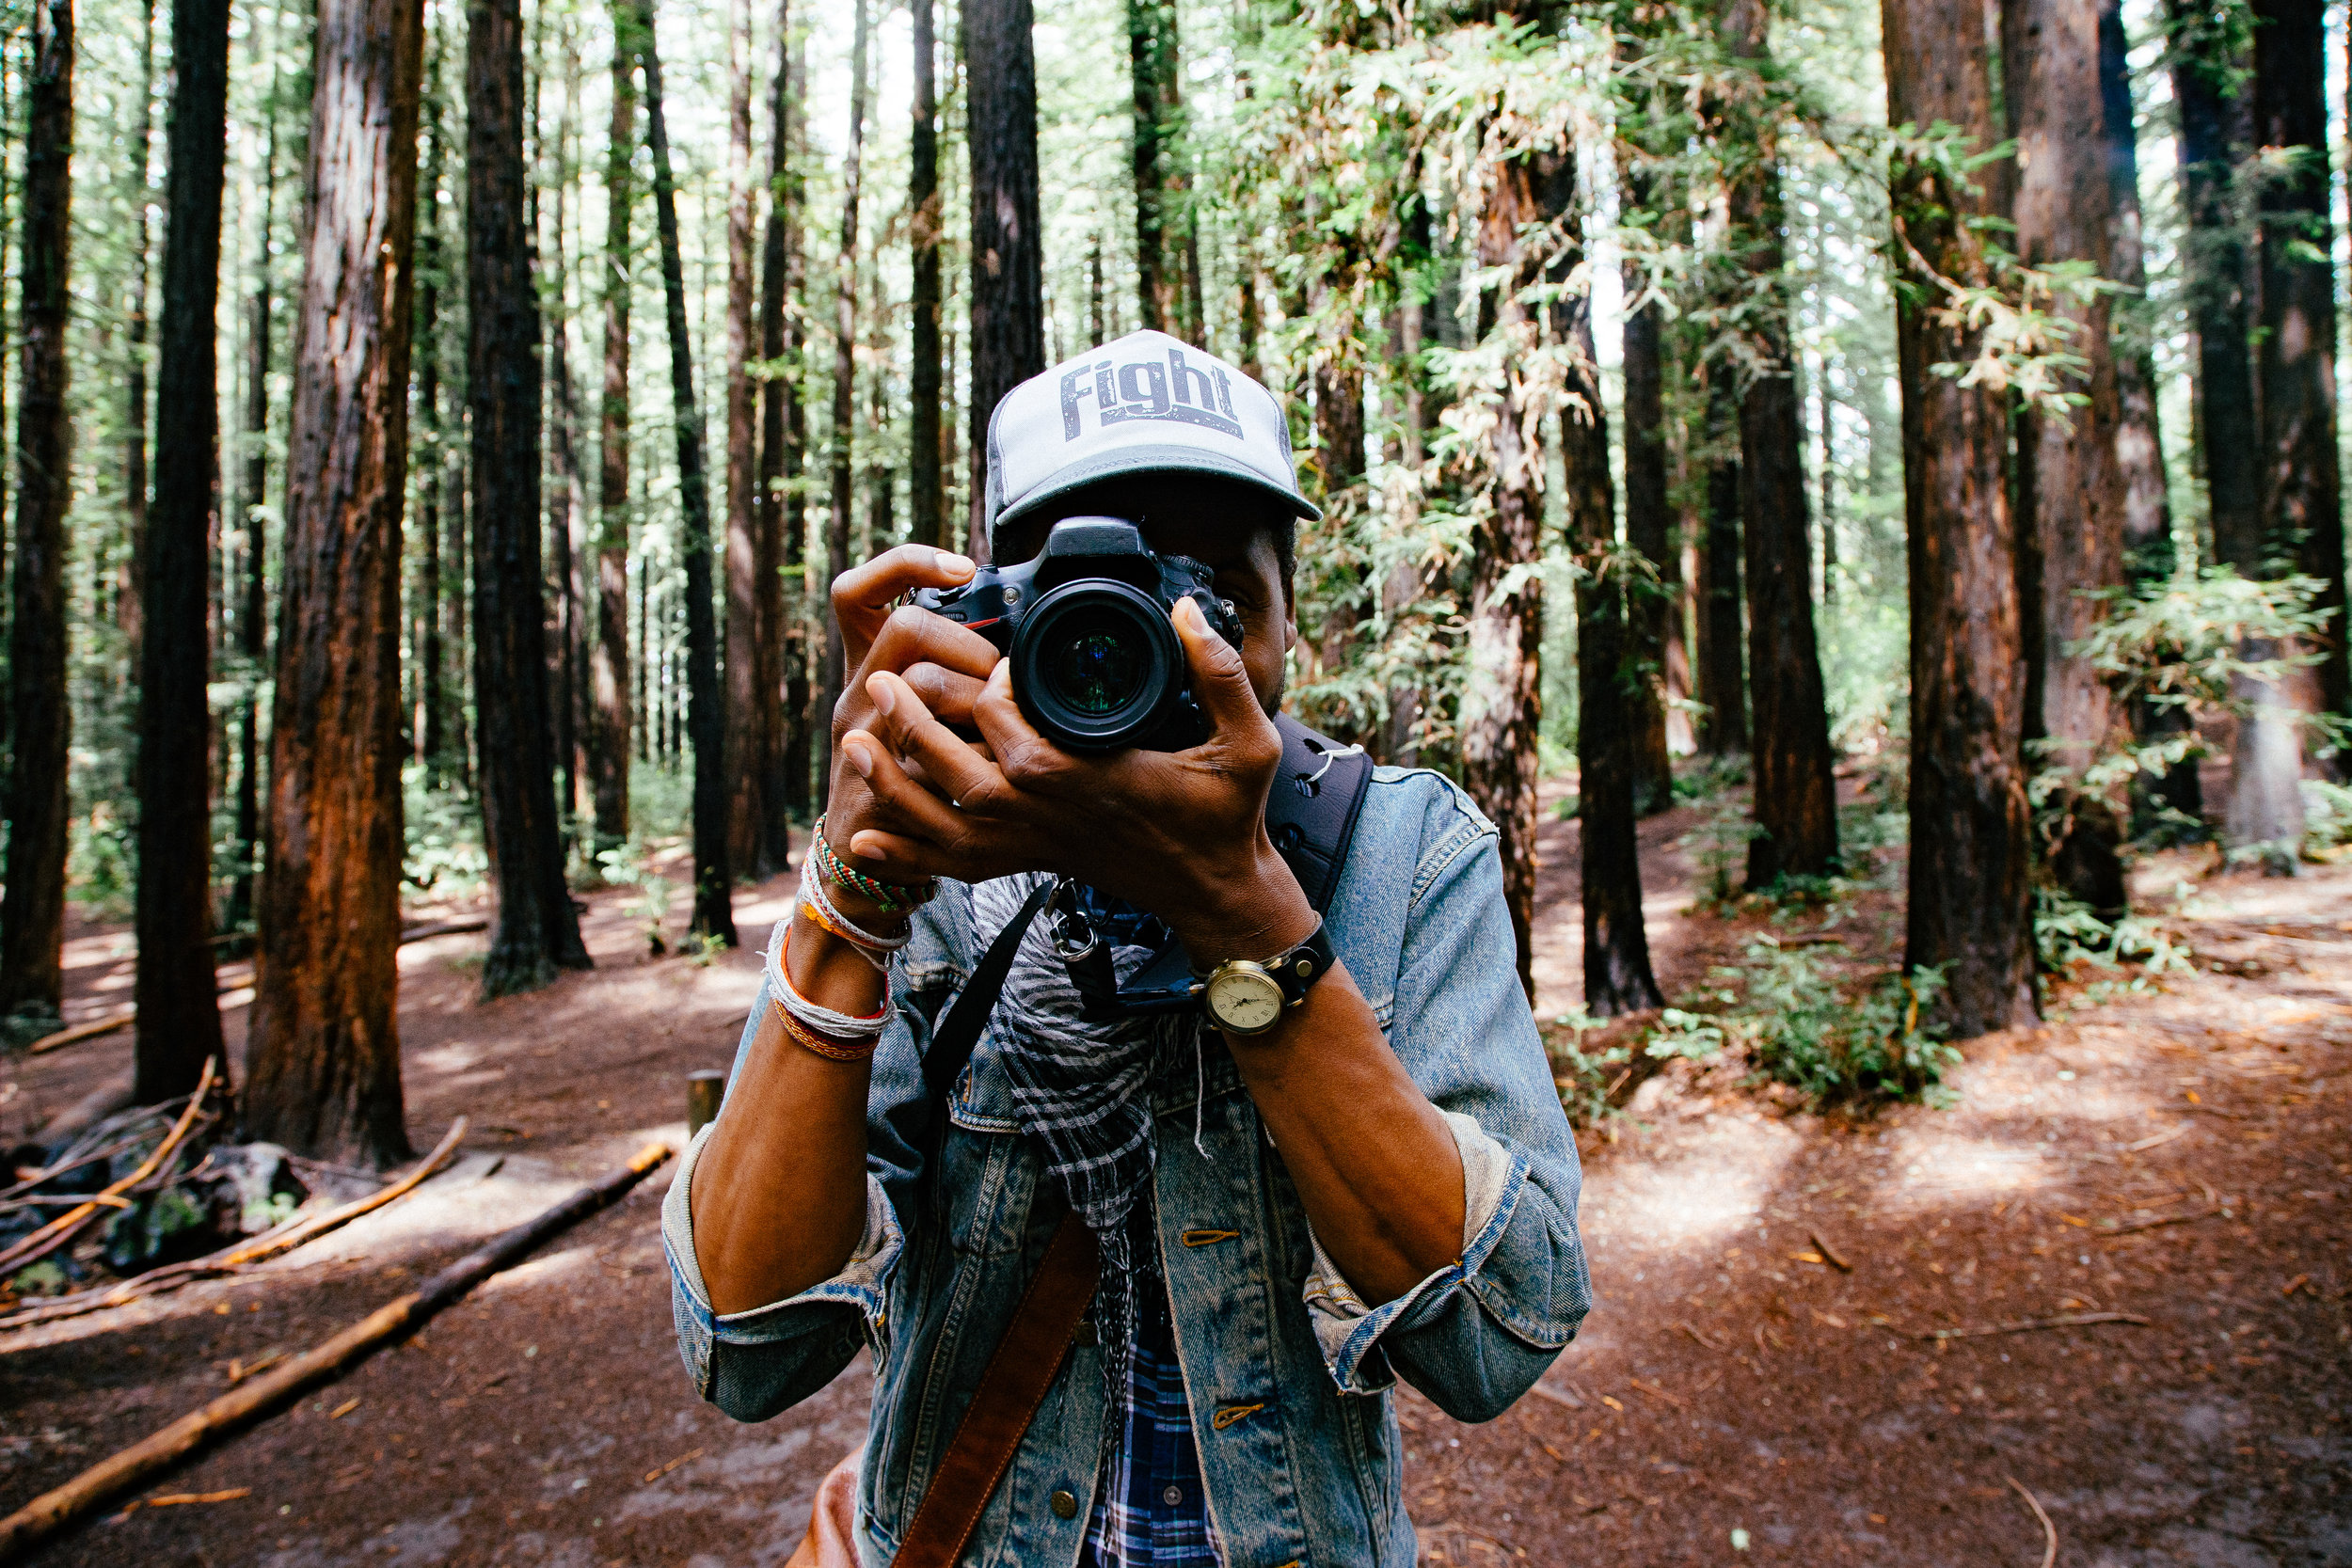 Louis bryANT III - is an international photographer and filmmaker based in the Bay Area. He has spent a good deal of his young career traveling the world - Asia, Latin America and Africa and reflecting a smile to the faces of people along his pathway. Compassionate connections come natural to this artistic free spirit. Even long after departing ways Louis proactively sustains the connections established with his subjects & clients.